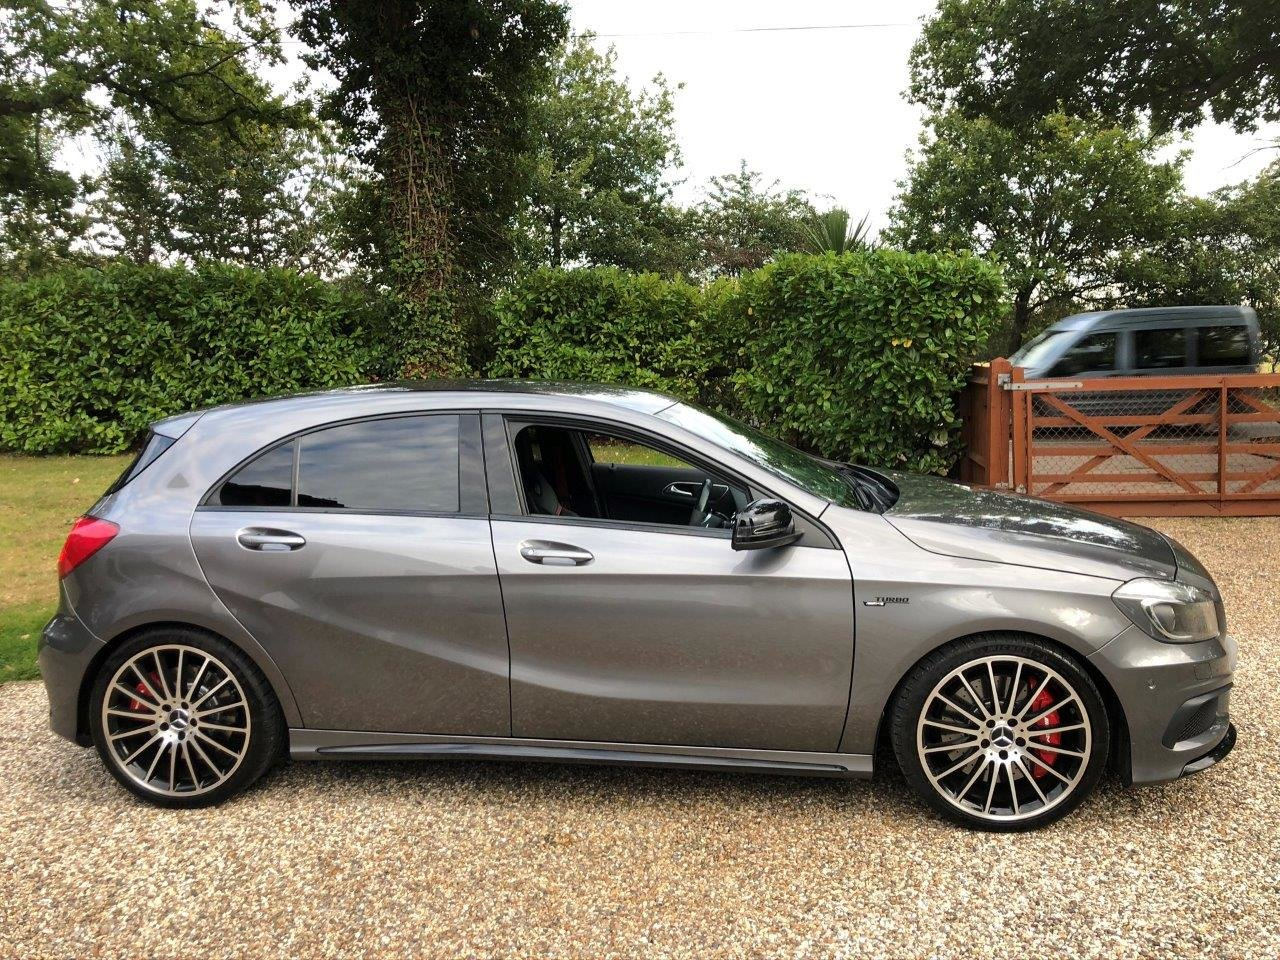 2015 Mercedes A45 AMG 4-Matic 7DCT 5-door hatchback For Sale (picture 3 of 6)